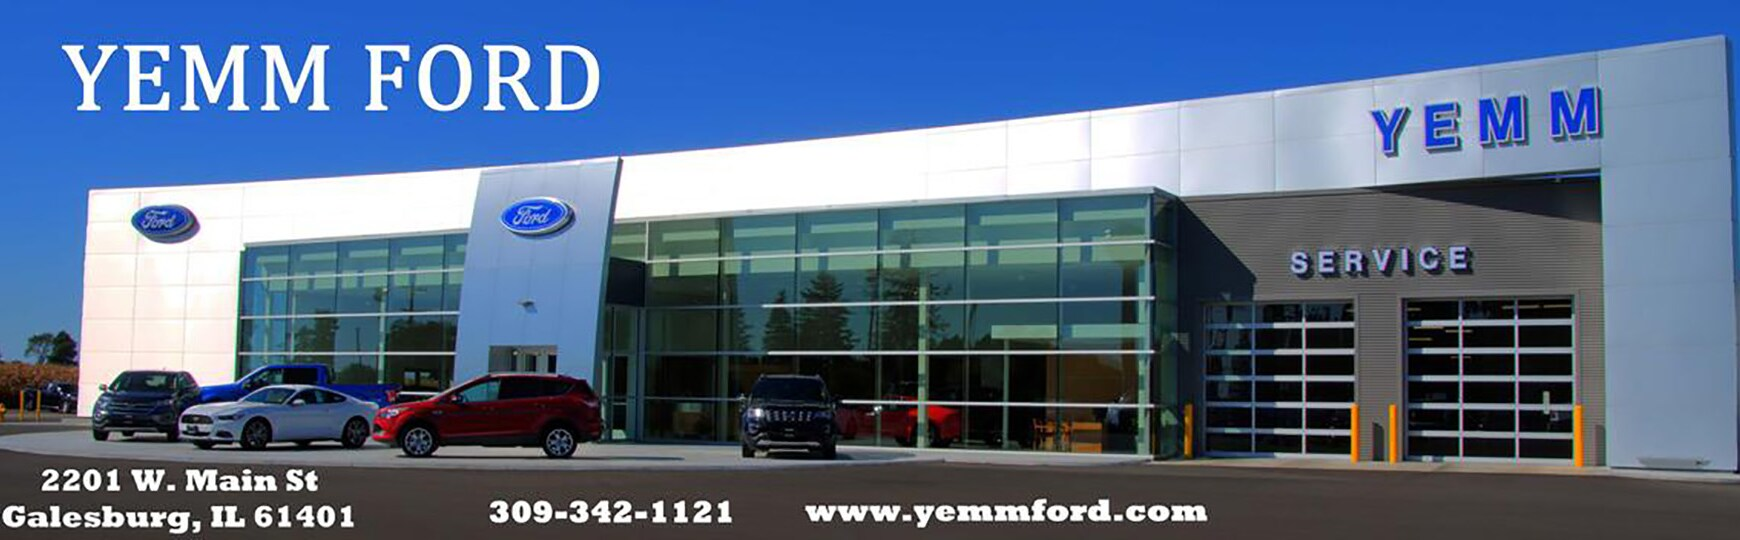 yemm ford ford dealership in galesburg il. Black Bedroom Furniture Sets. Home Design Ideas